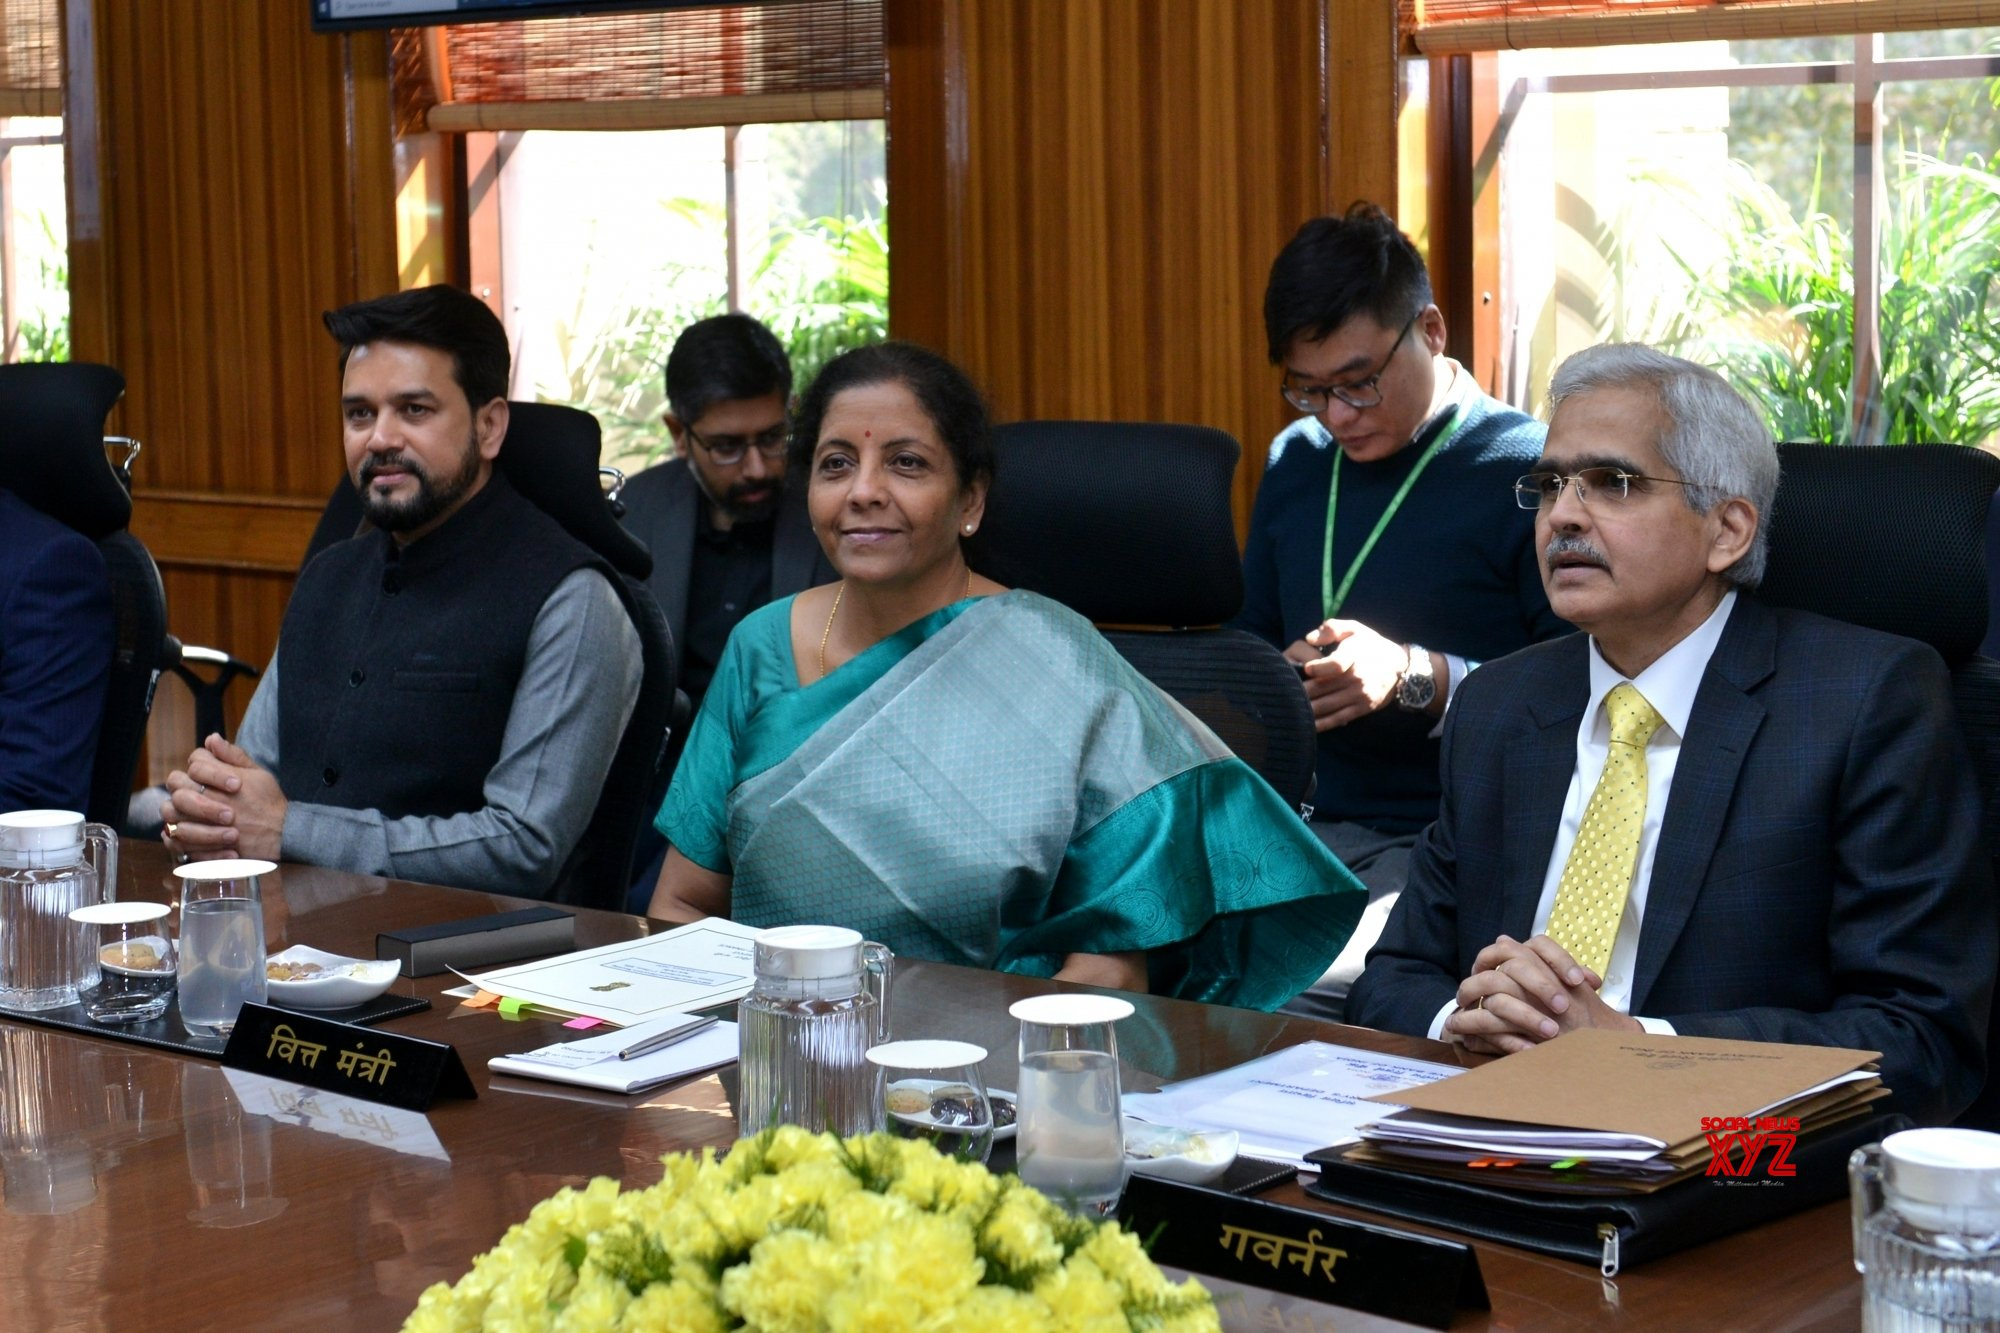 New Delhi: Meeting of Central Board of Directors of RBI - Nirmala Sitharaman (Batch - 2) #Gallery